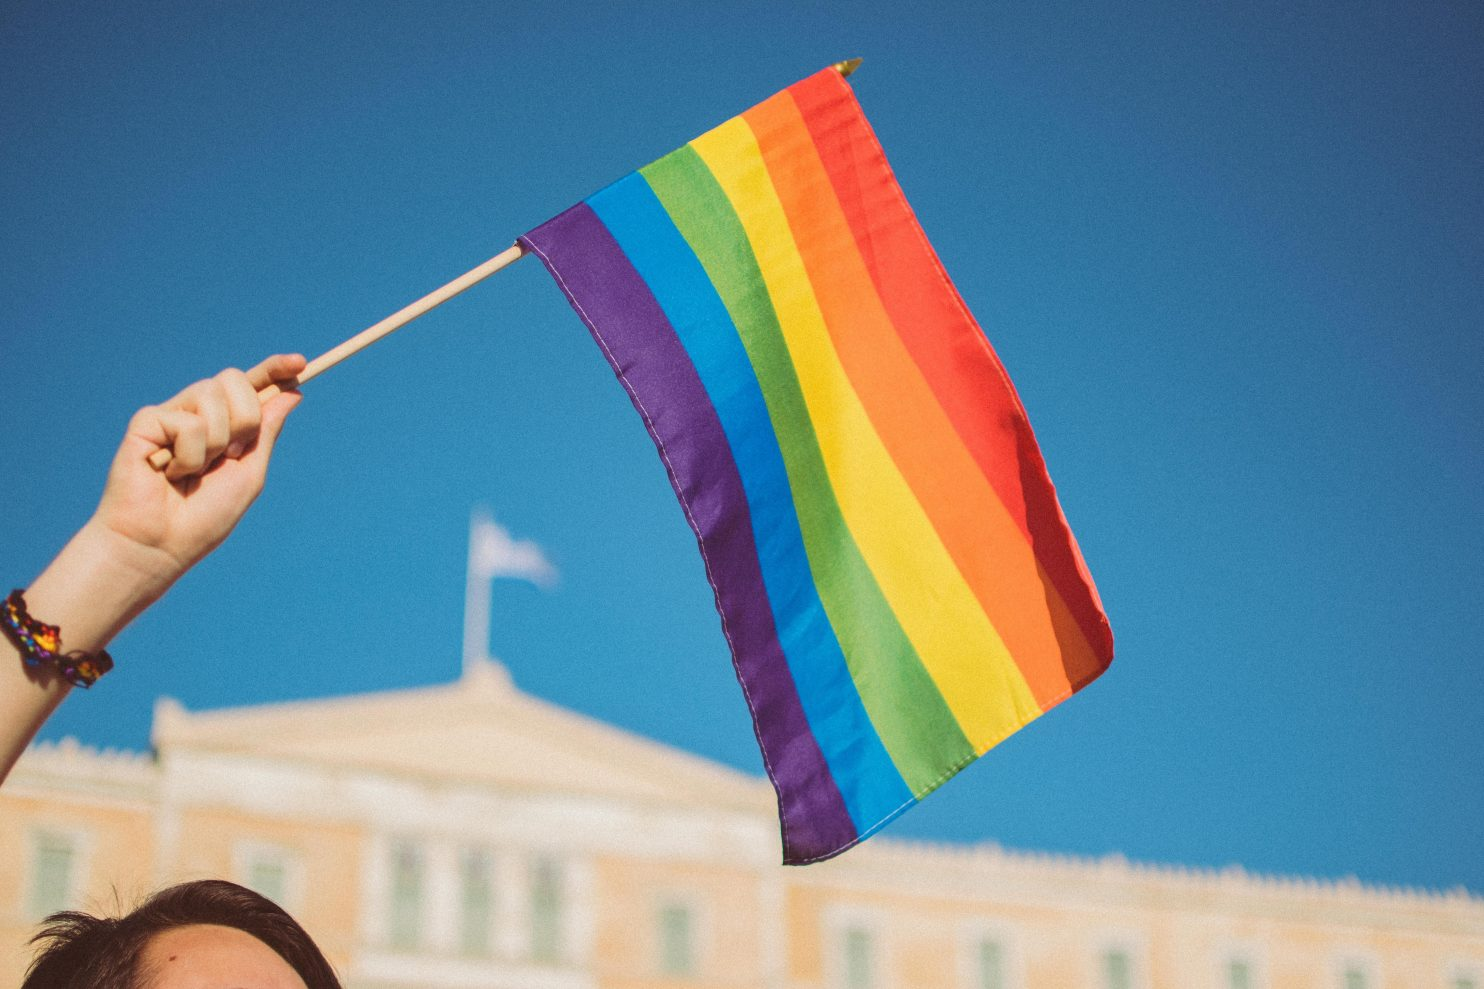 Someone is waving the Pride flag against a blue sky